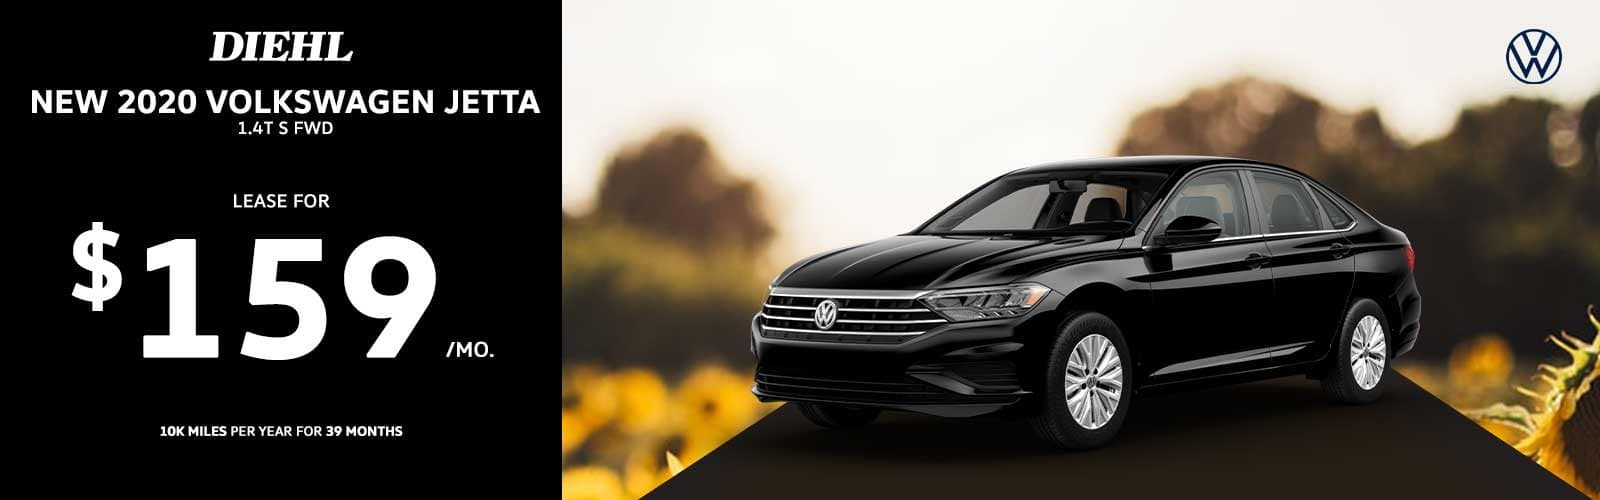 2020 Jetta Lease summer clearance event summer sales event fourth of july sales event diehl automotive Volkswagen lease special diehl of butler pa vw